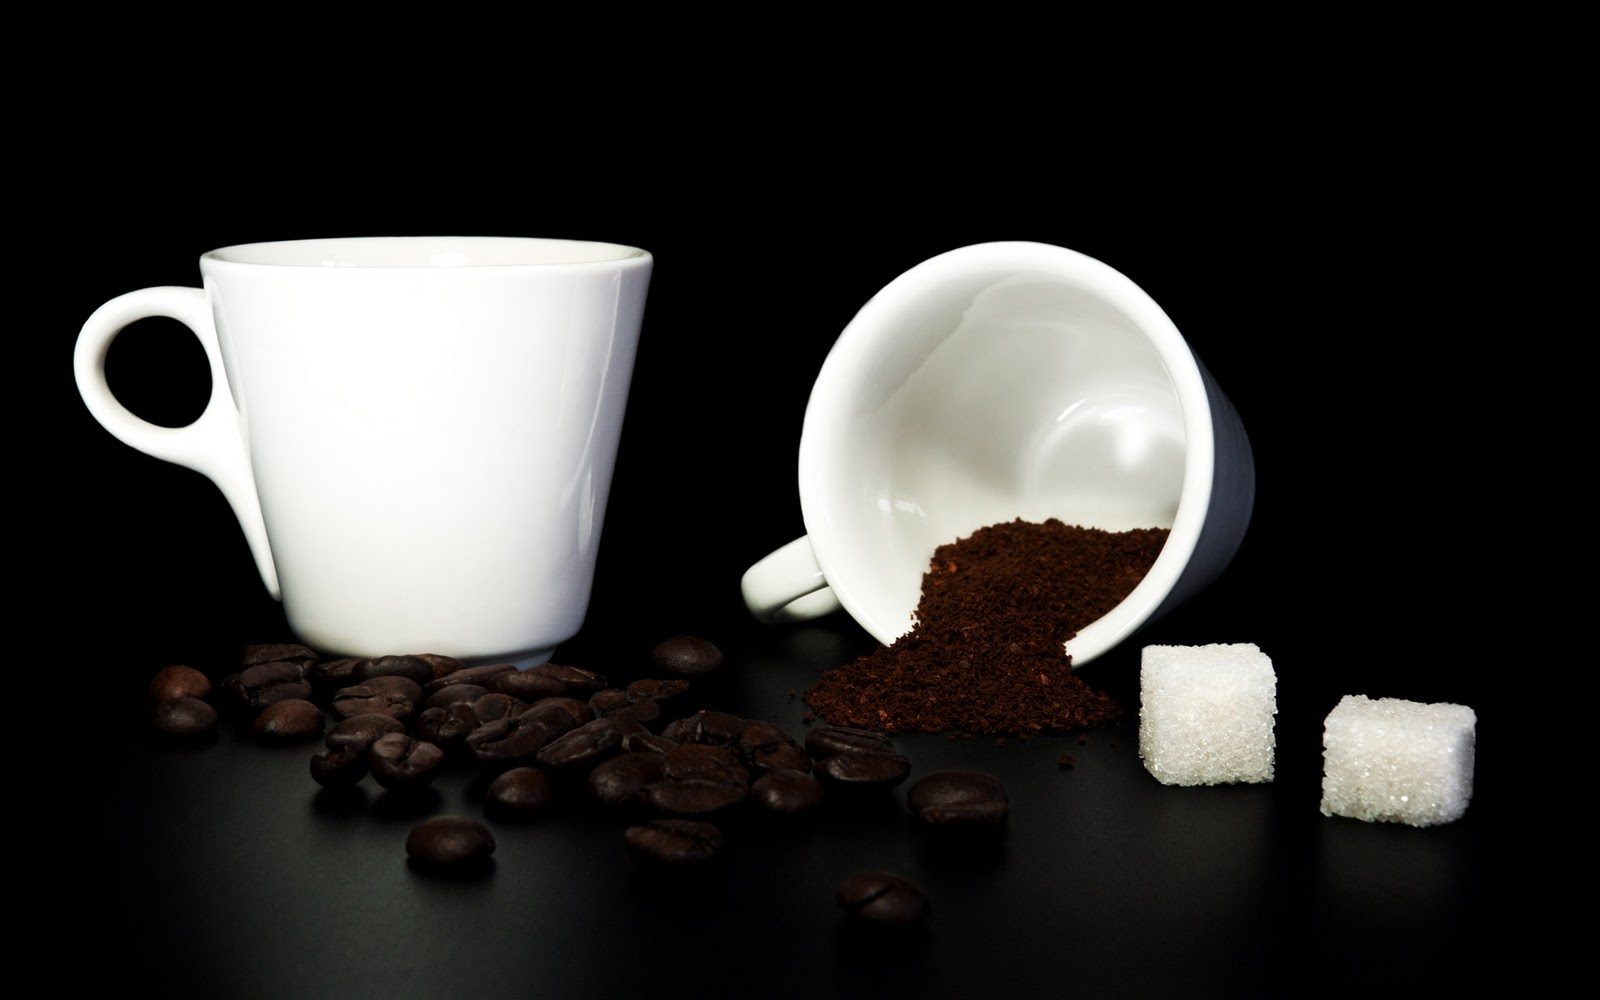 COFFEE HD WALLPAPERS ~ HD WALLPAPERS